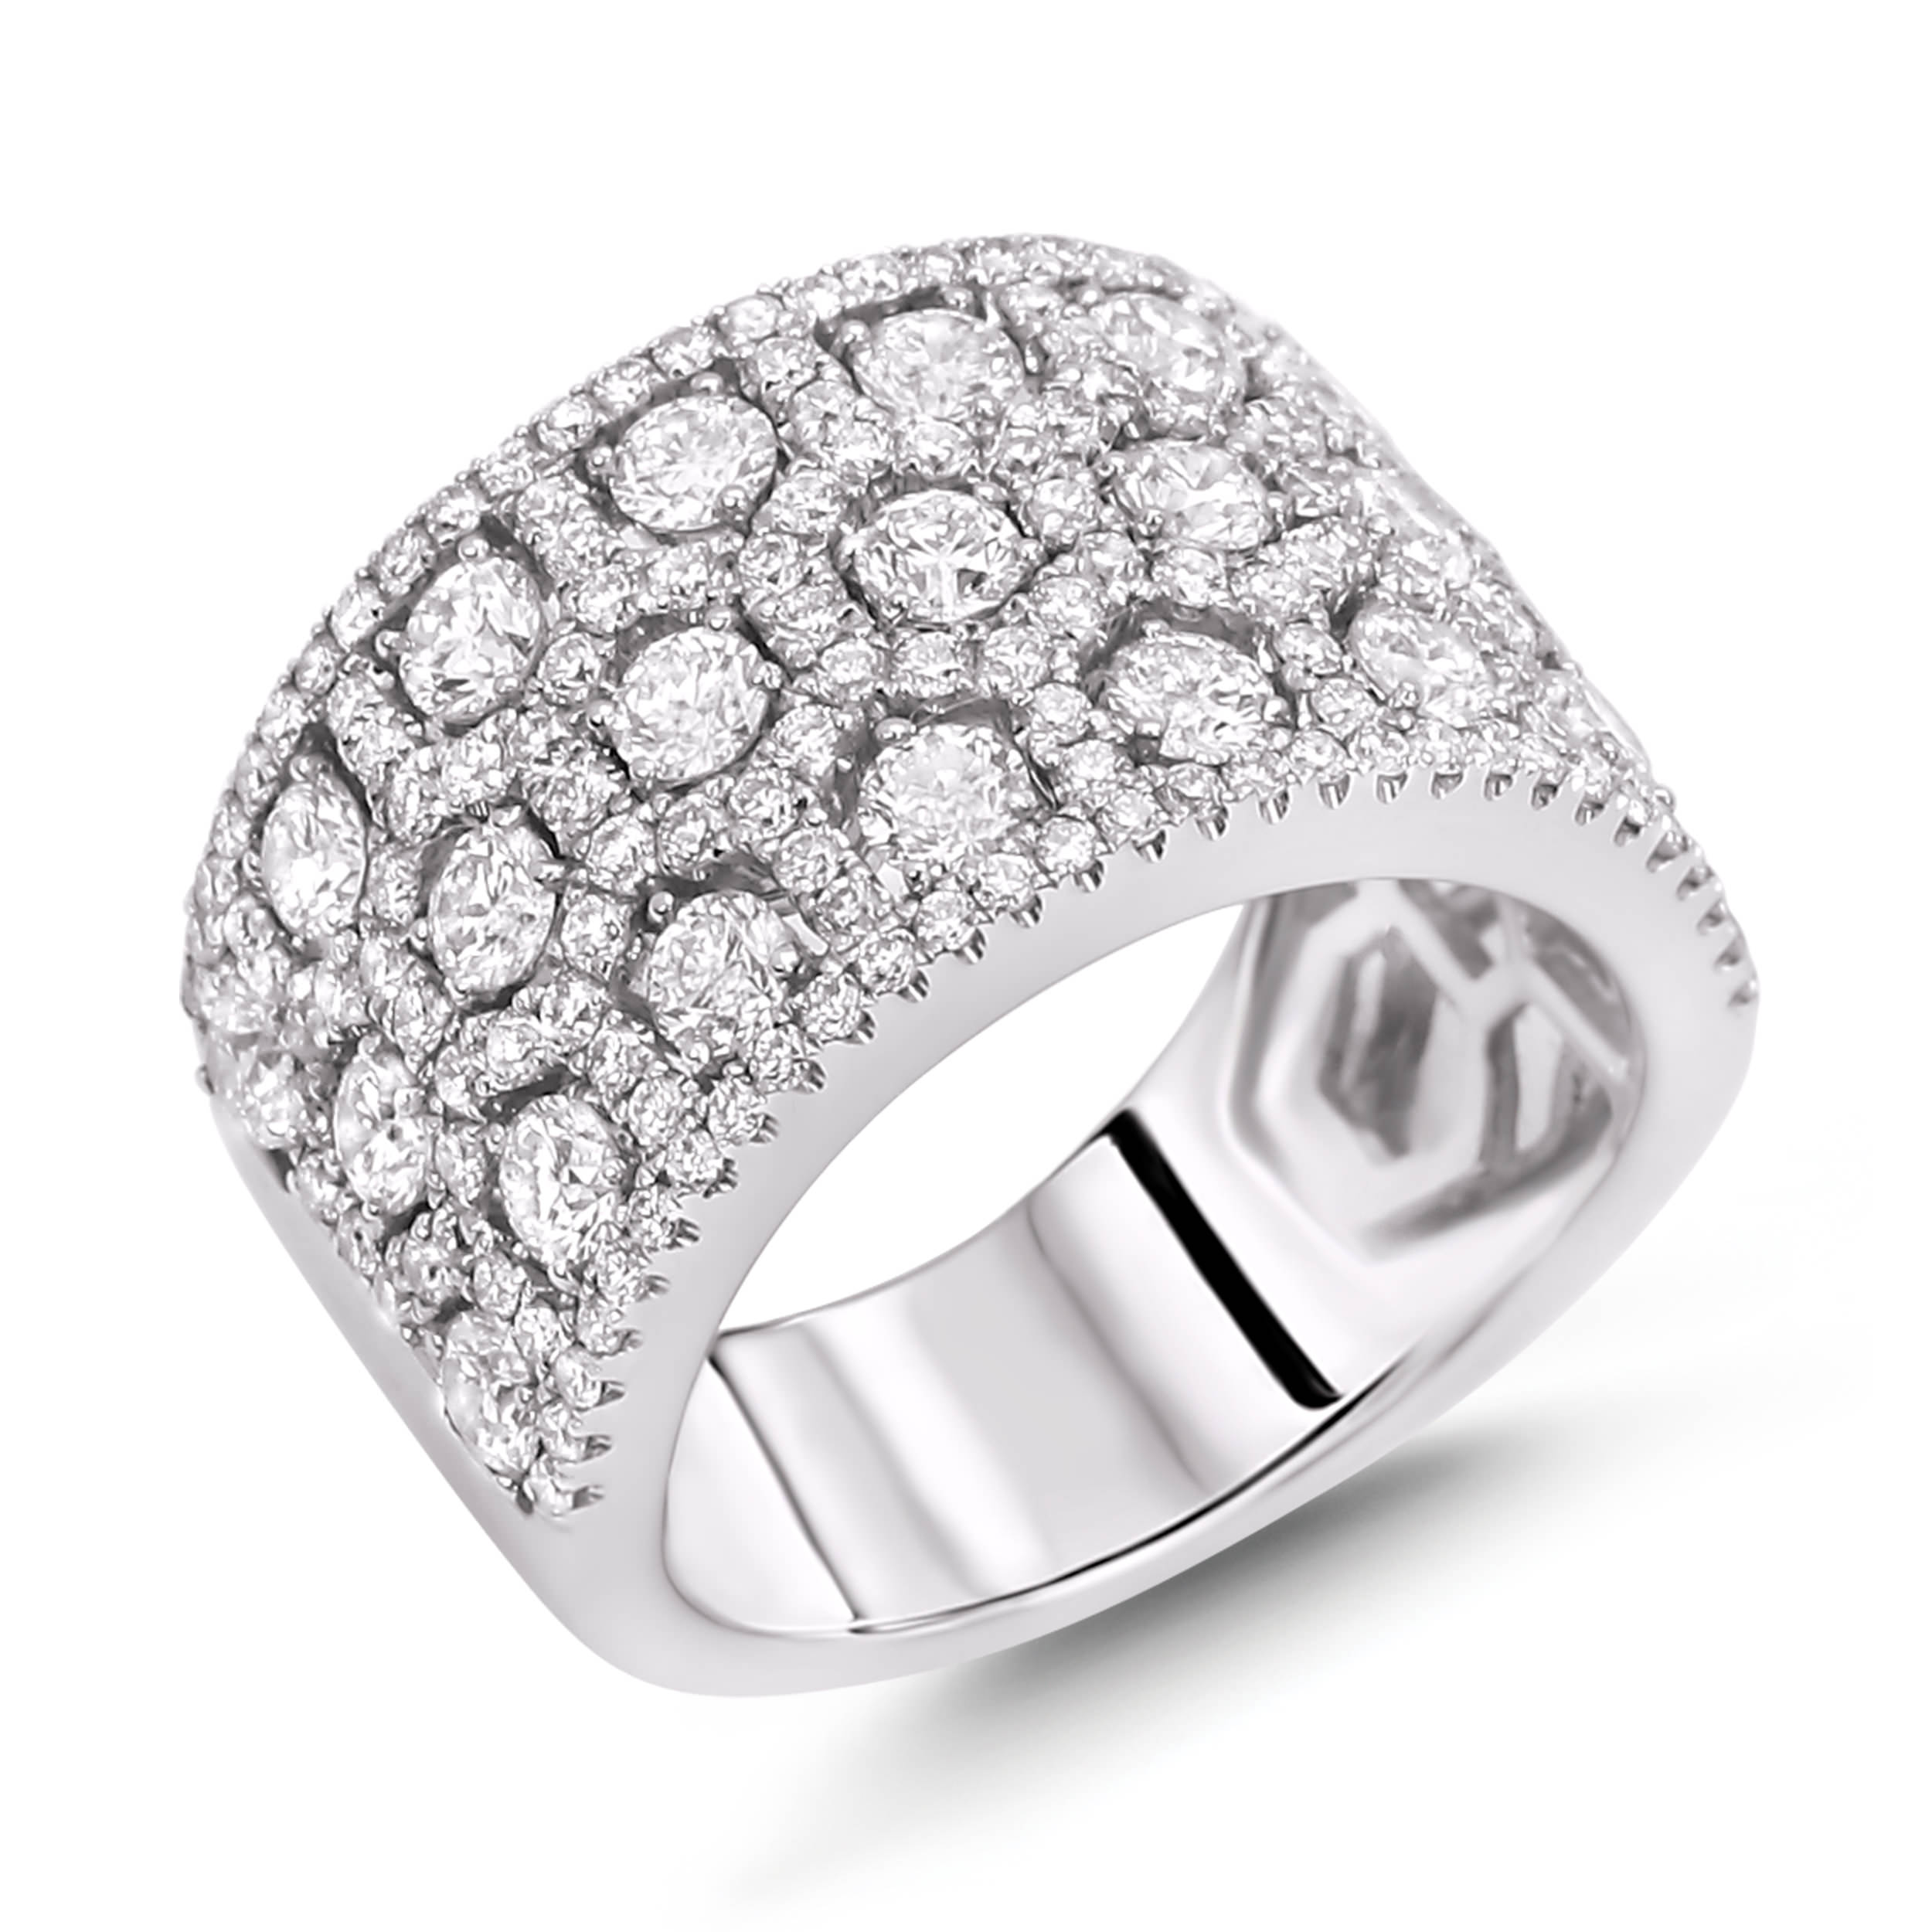 rings categories engagements jacksonville diamond engagement ring product fl anniversaries bridal aniversary jewelry and